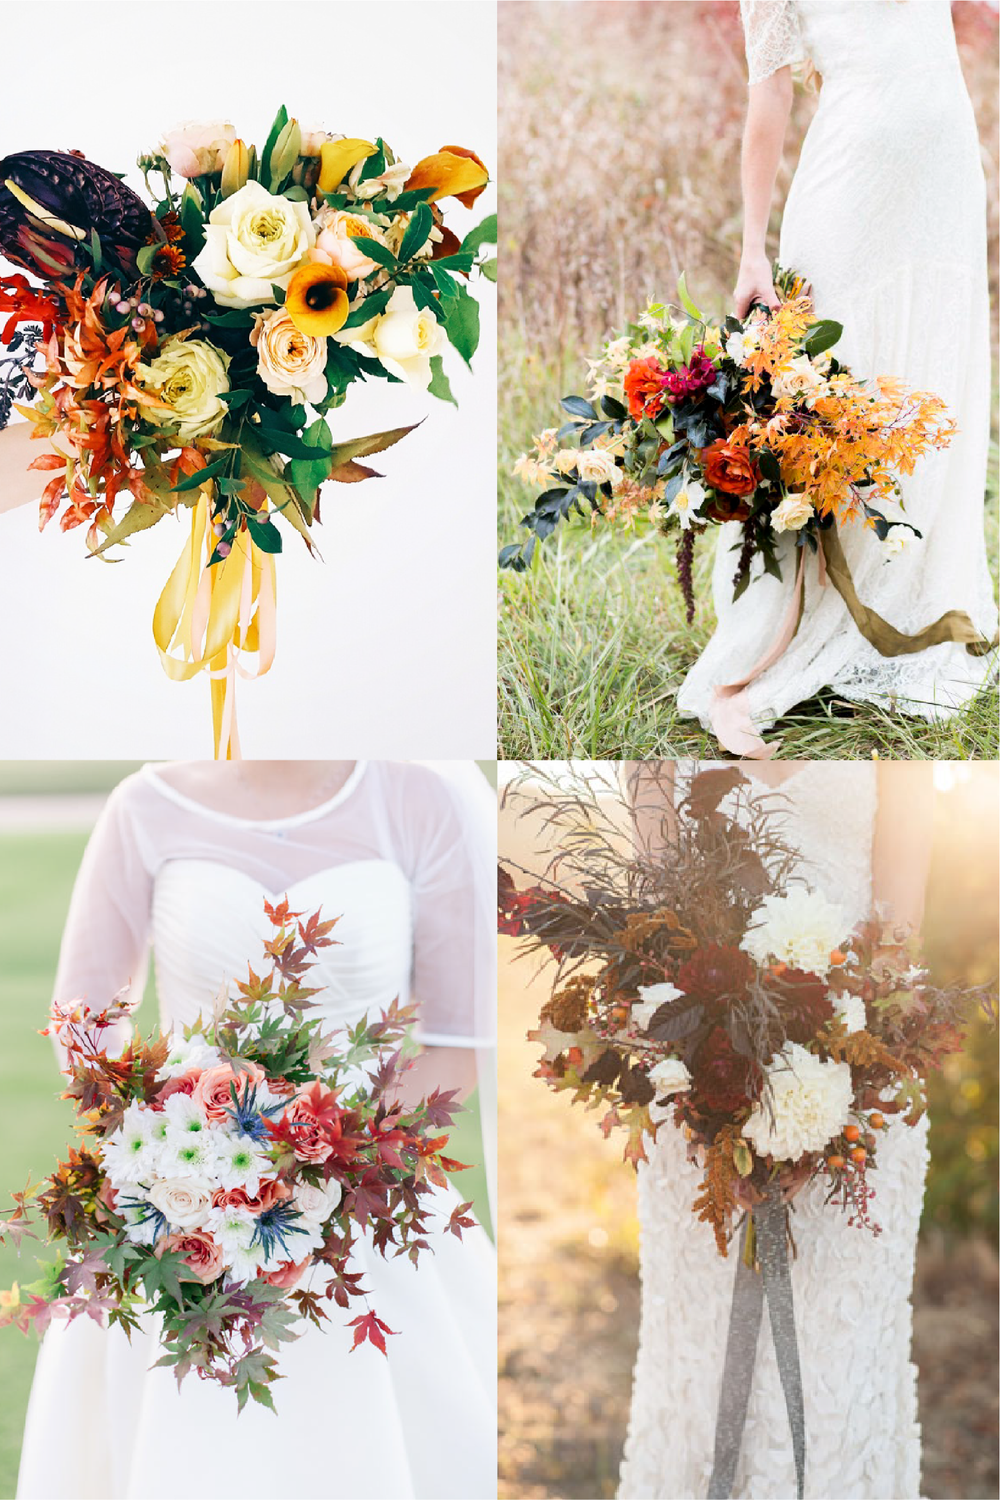 FROM CLOCKWISE, FROM TOP LEFT: FLOWERS BY LIME TREE BOWER ;   PHOTO BY REVERIE SUPPLY; FLOWERS BY  AMANDA O'SHANNESSY CREATIVE AND PHOTO BY MELANIE DUERKOPP; FLOWERS BY SUSDAN DIPPER (FAMILY FRIEND OF COUPLE) AND PHOTO BY  JEN + ASHLEY PHOTOGRAPHY.